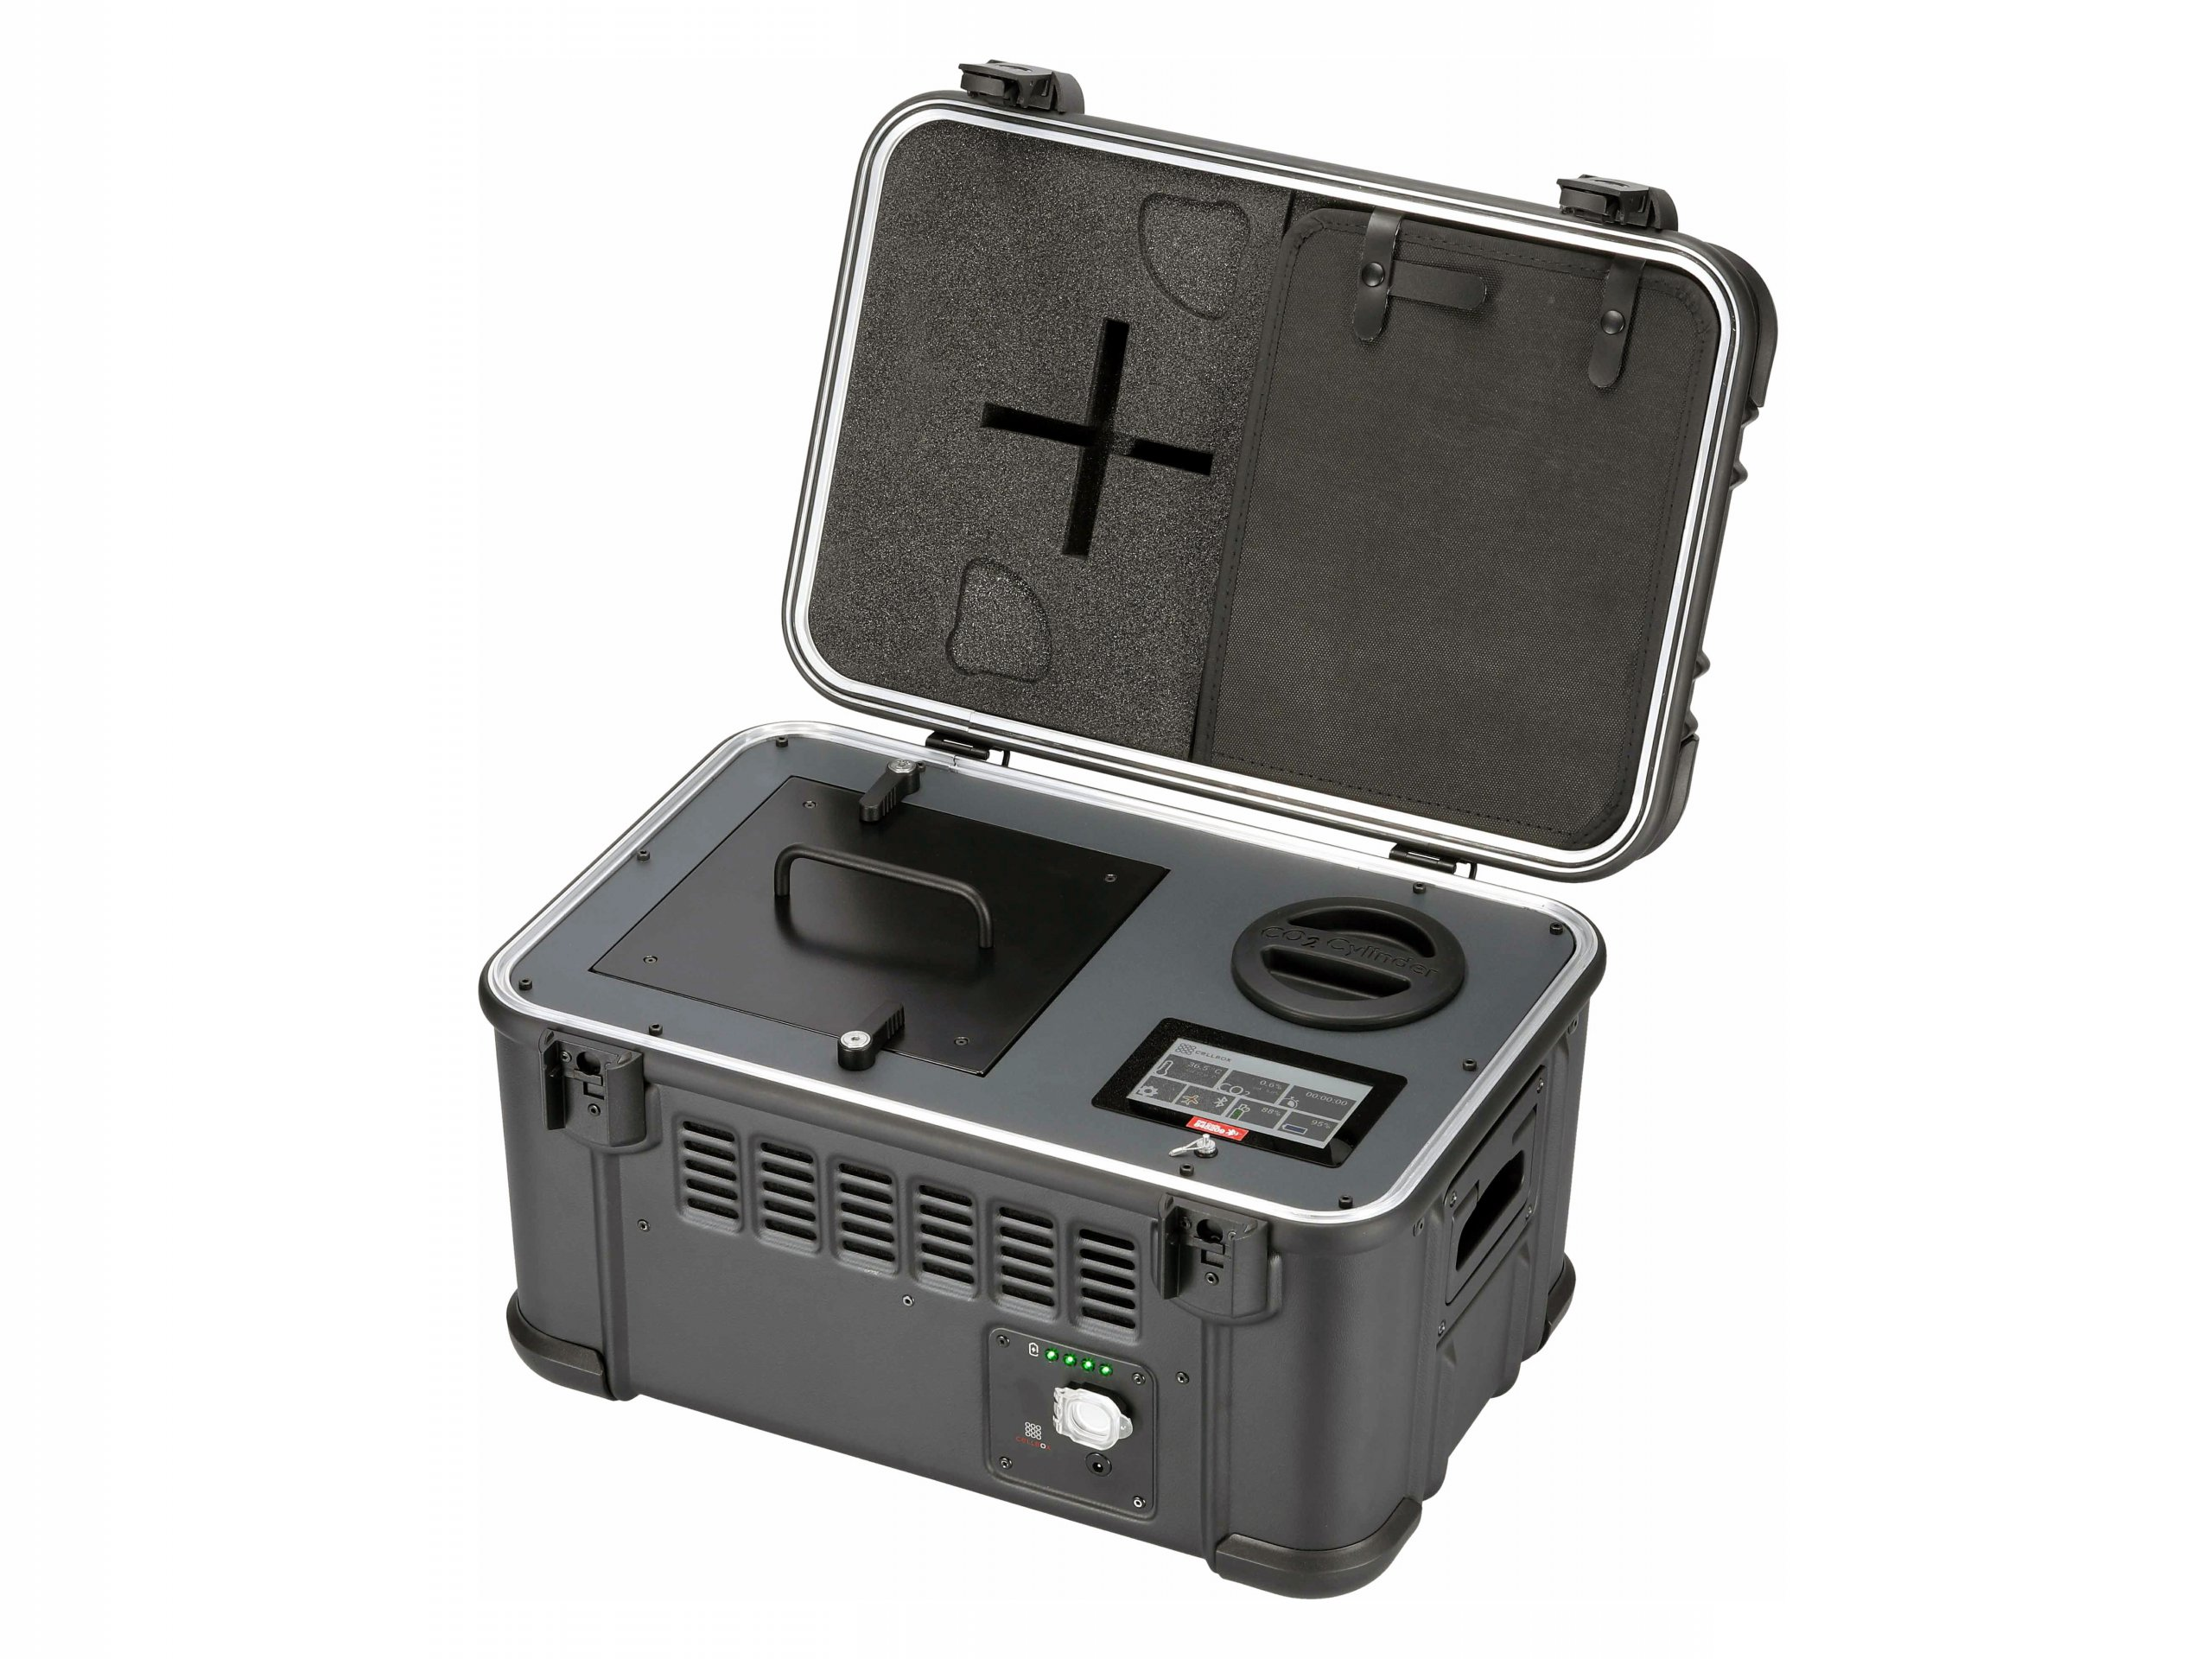 Transport case for live cell cultures